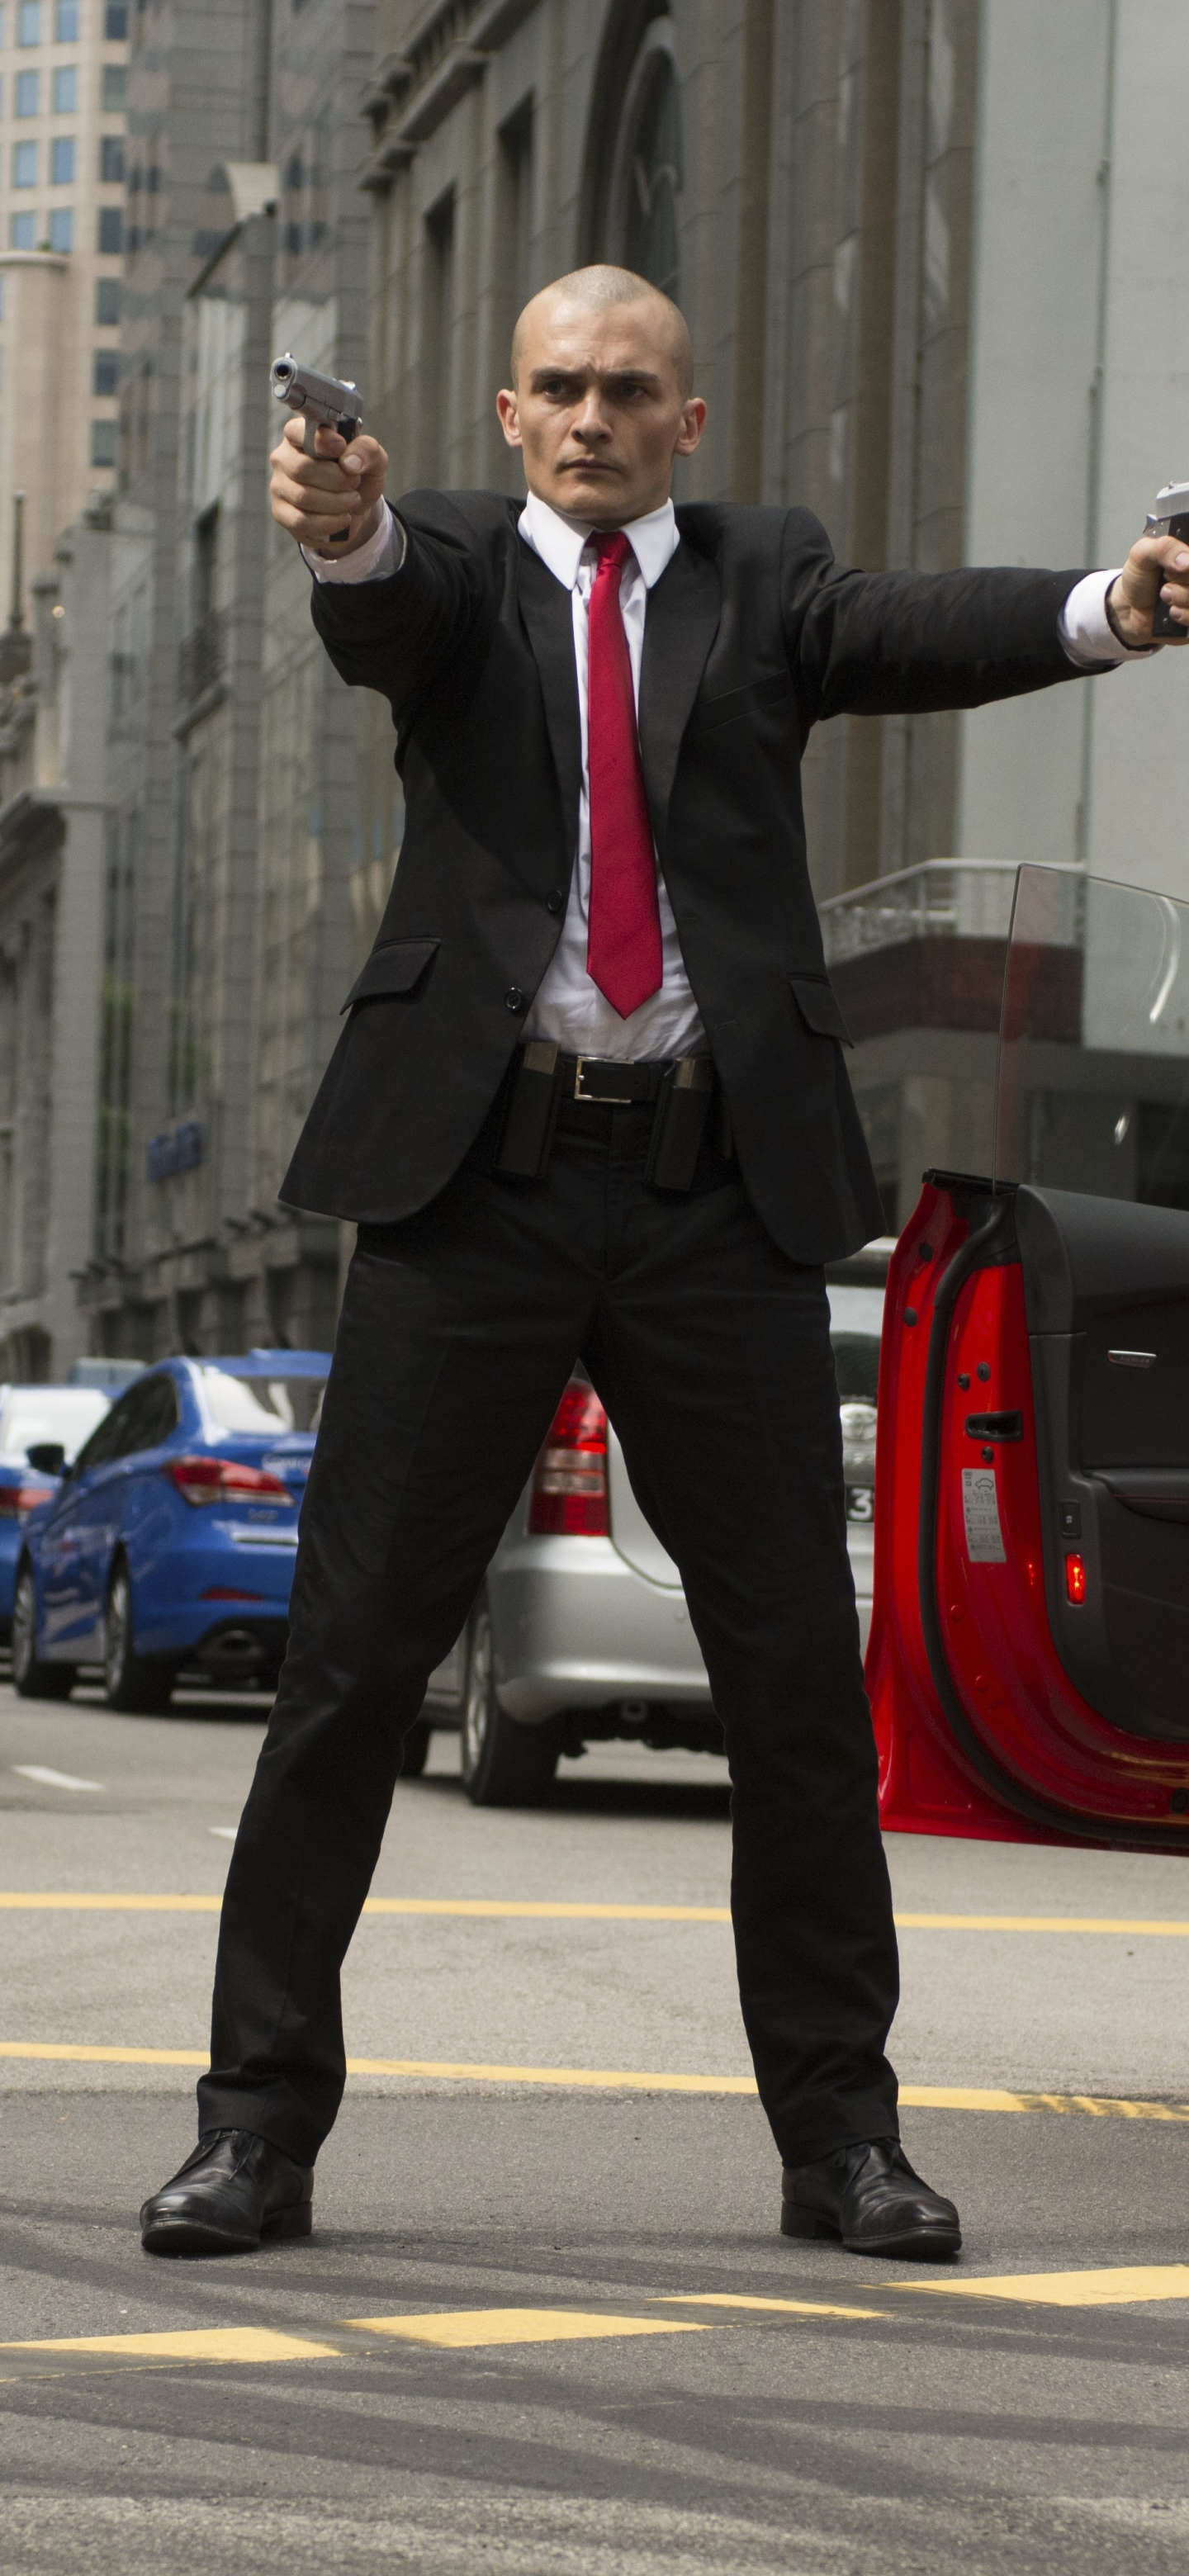 Movie Hitman Agent 47 1440x3120 Wallpaper Id 794884 Mobile Abyss